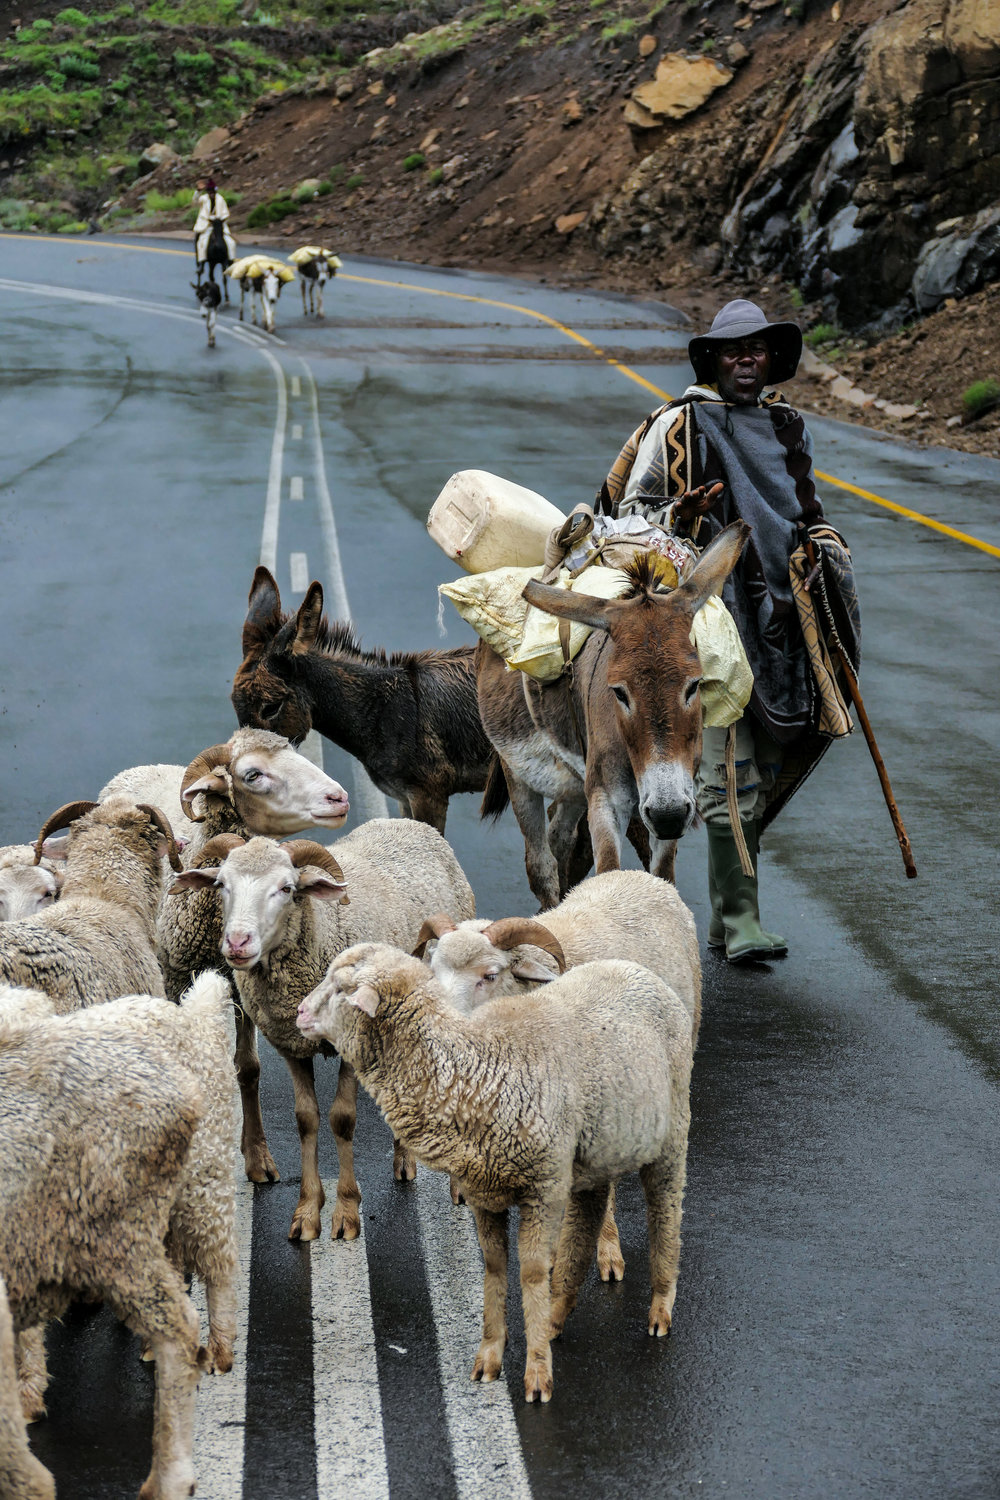 Basotho shepherd and son travel with their flock of sheep in Lesotho